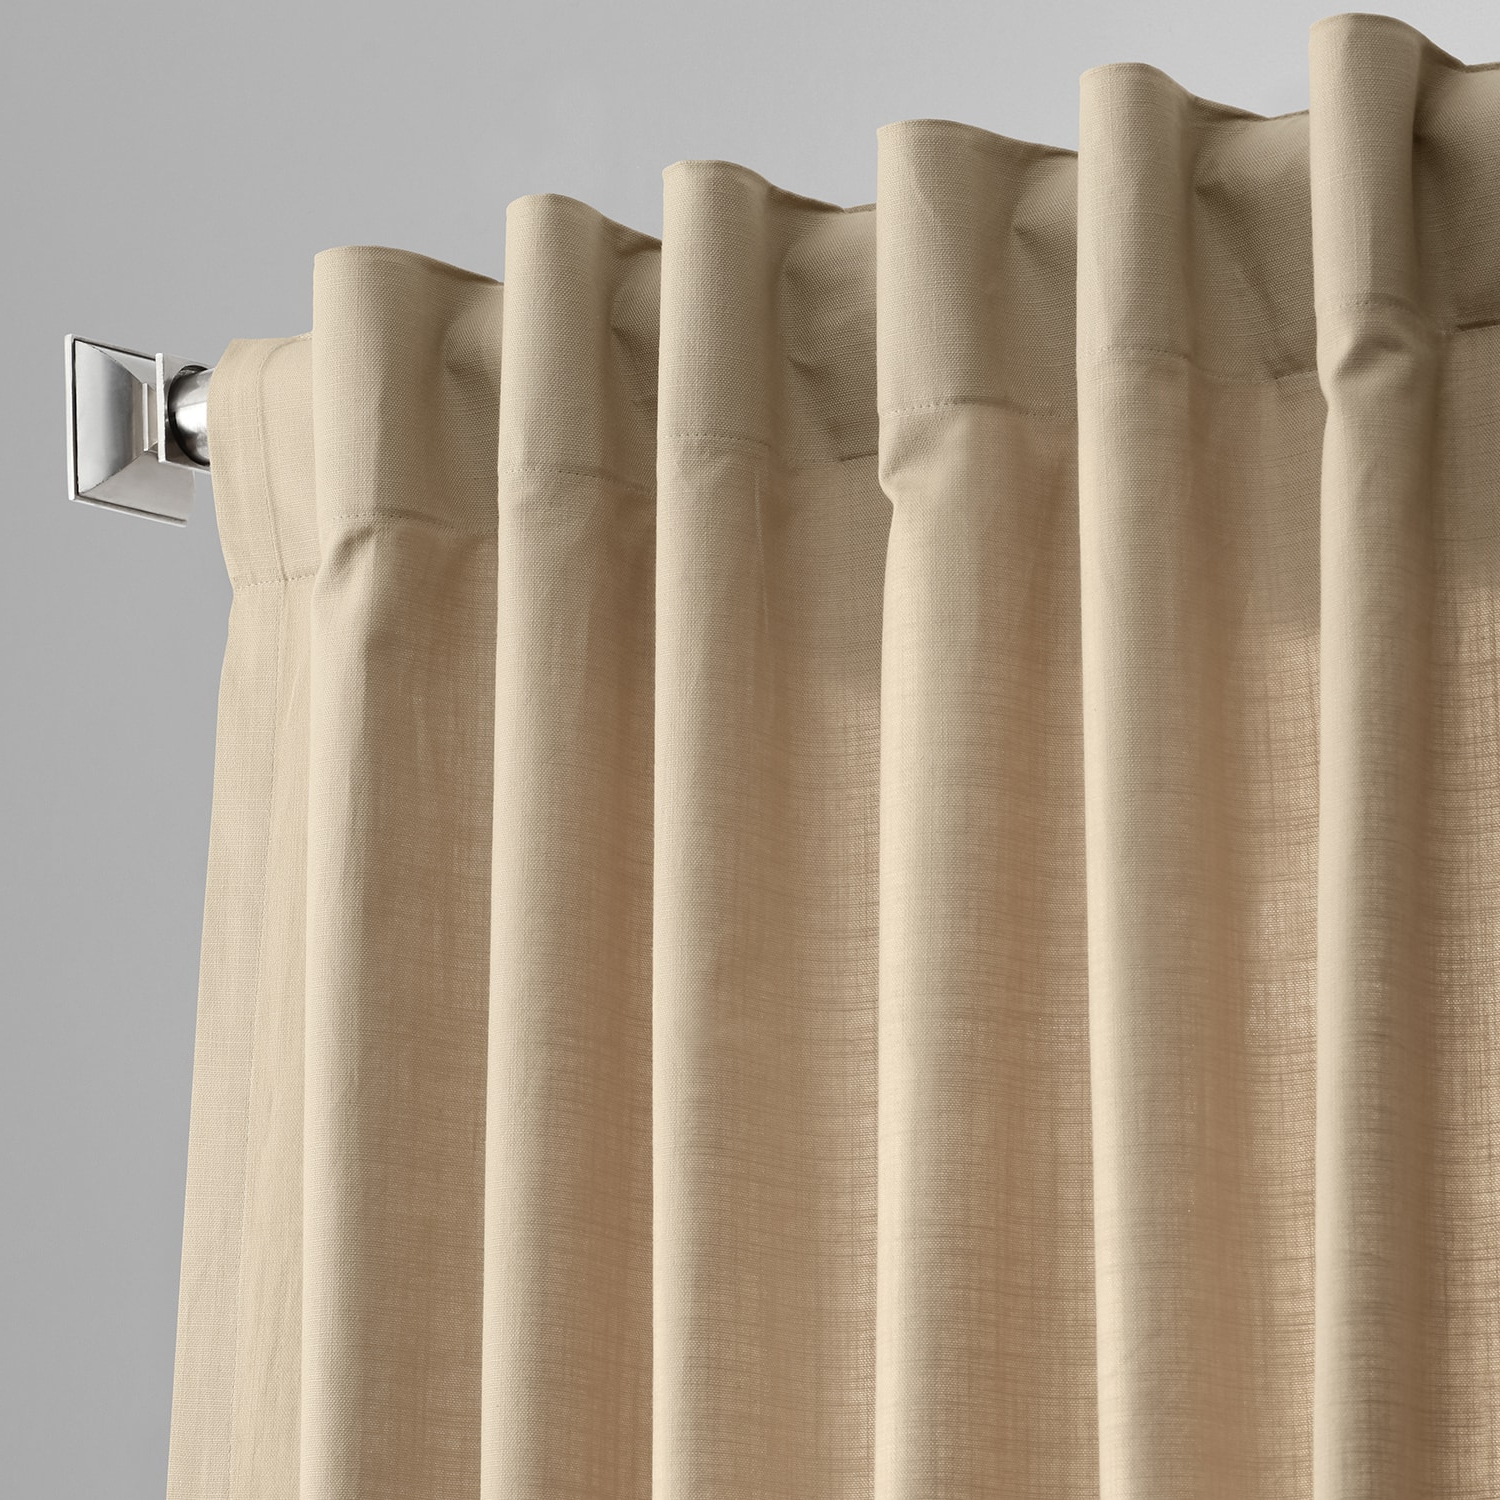 Solid Country Cotton Linen Weave Curtain Panels With Regard To Widely Used Details About Country Cotton Linen Weave Curtains (sold Per Panel) (View 14 of 20)